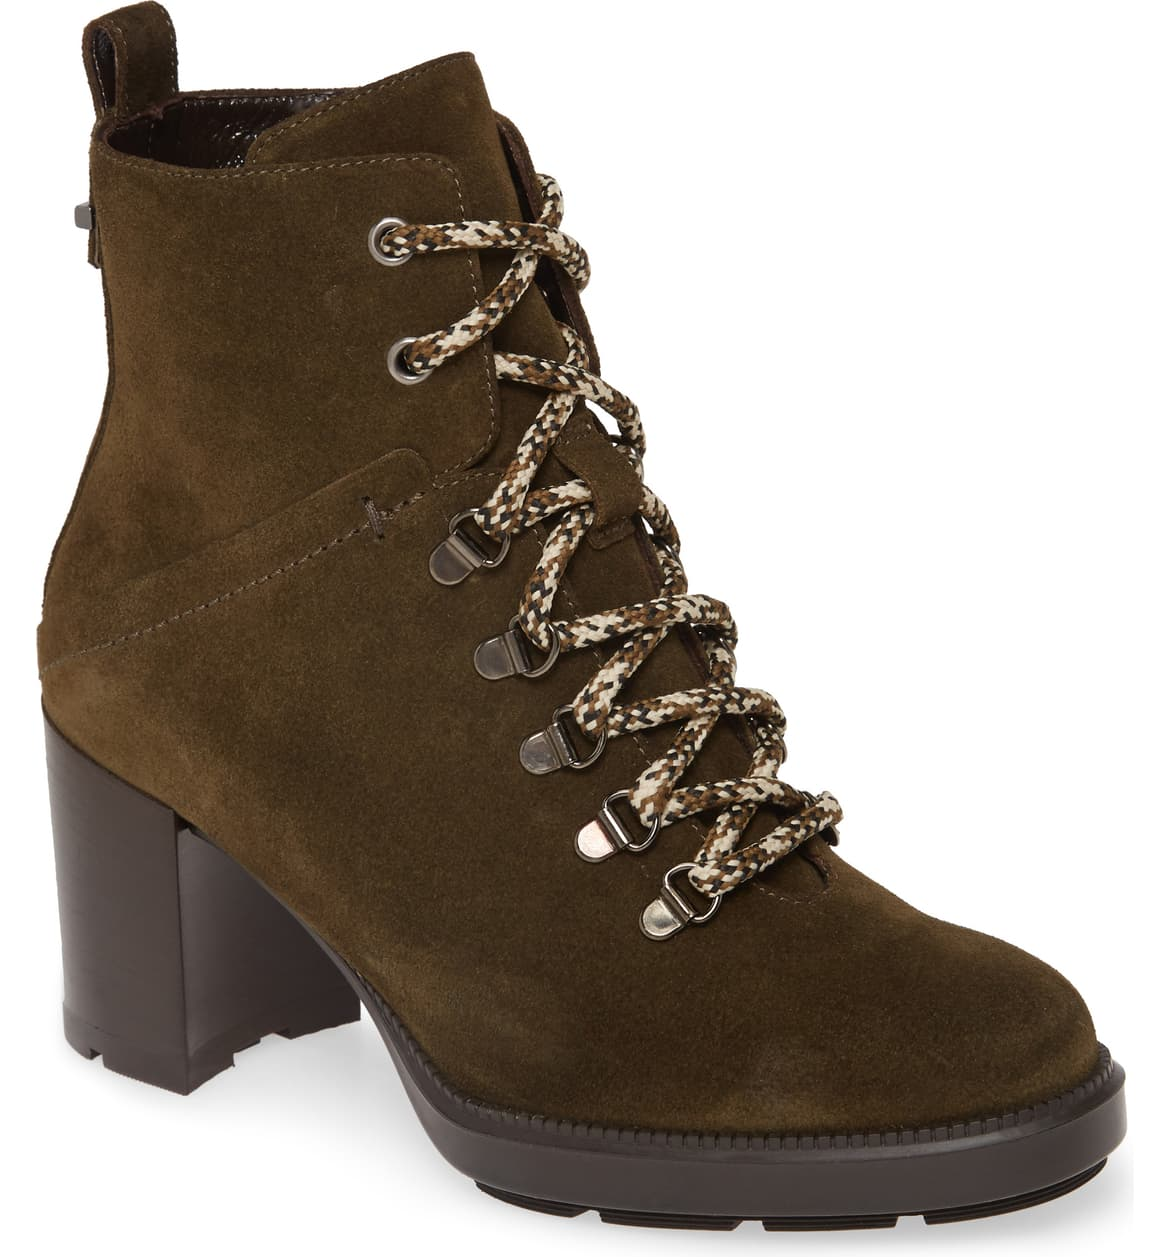 aquatalia heeled hiking boots olive green suede nordstrom